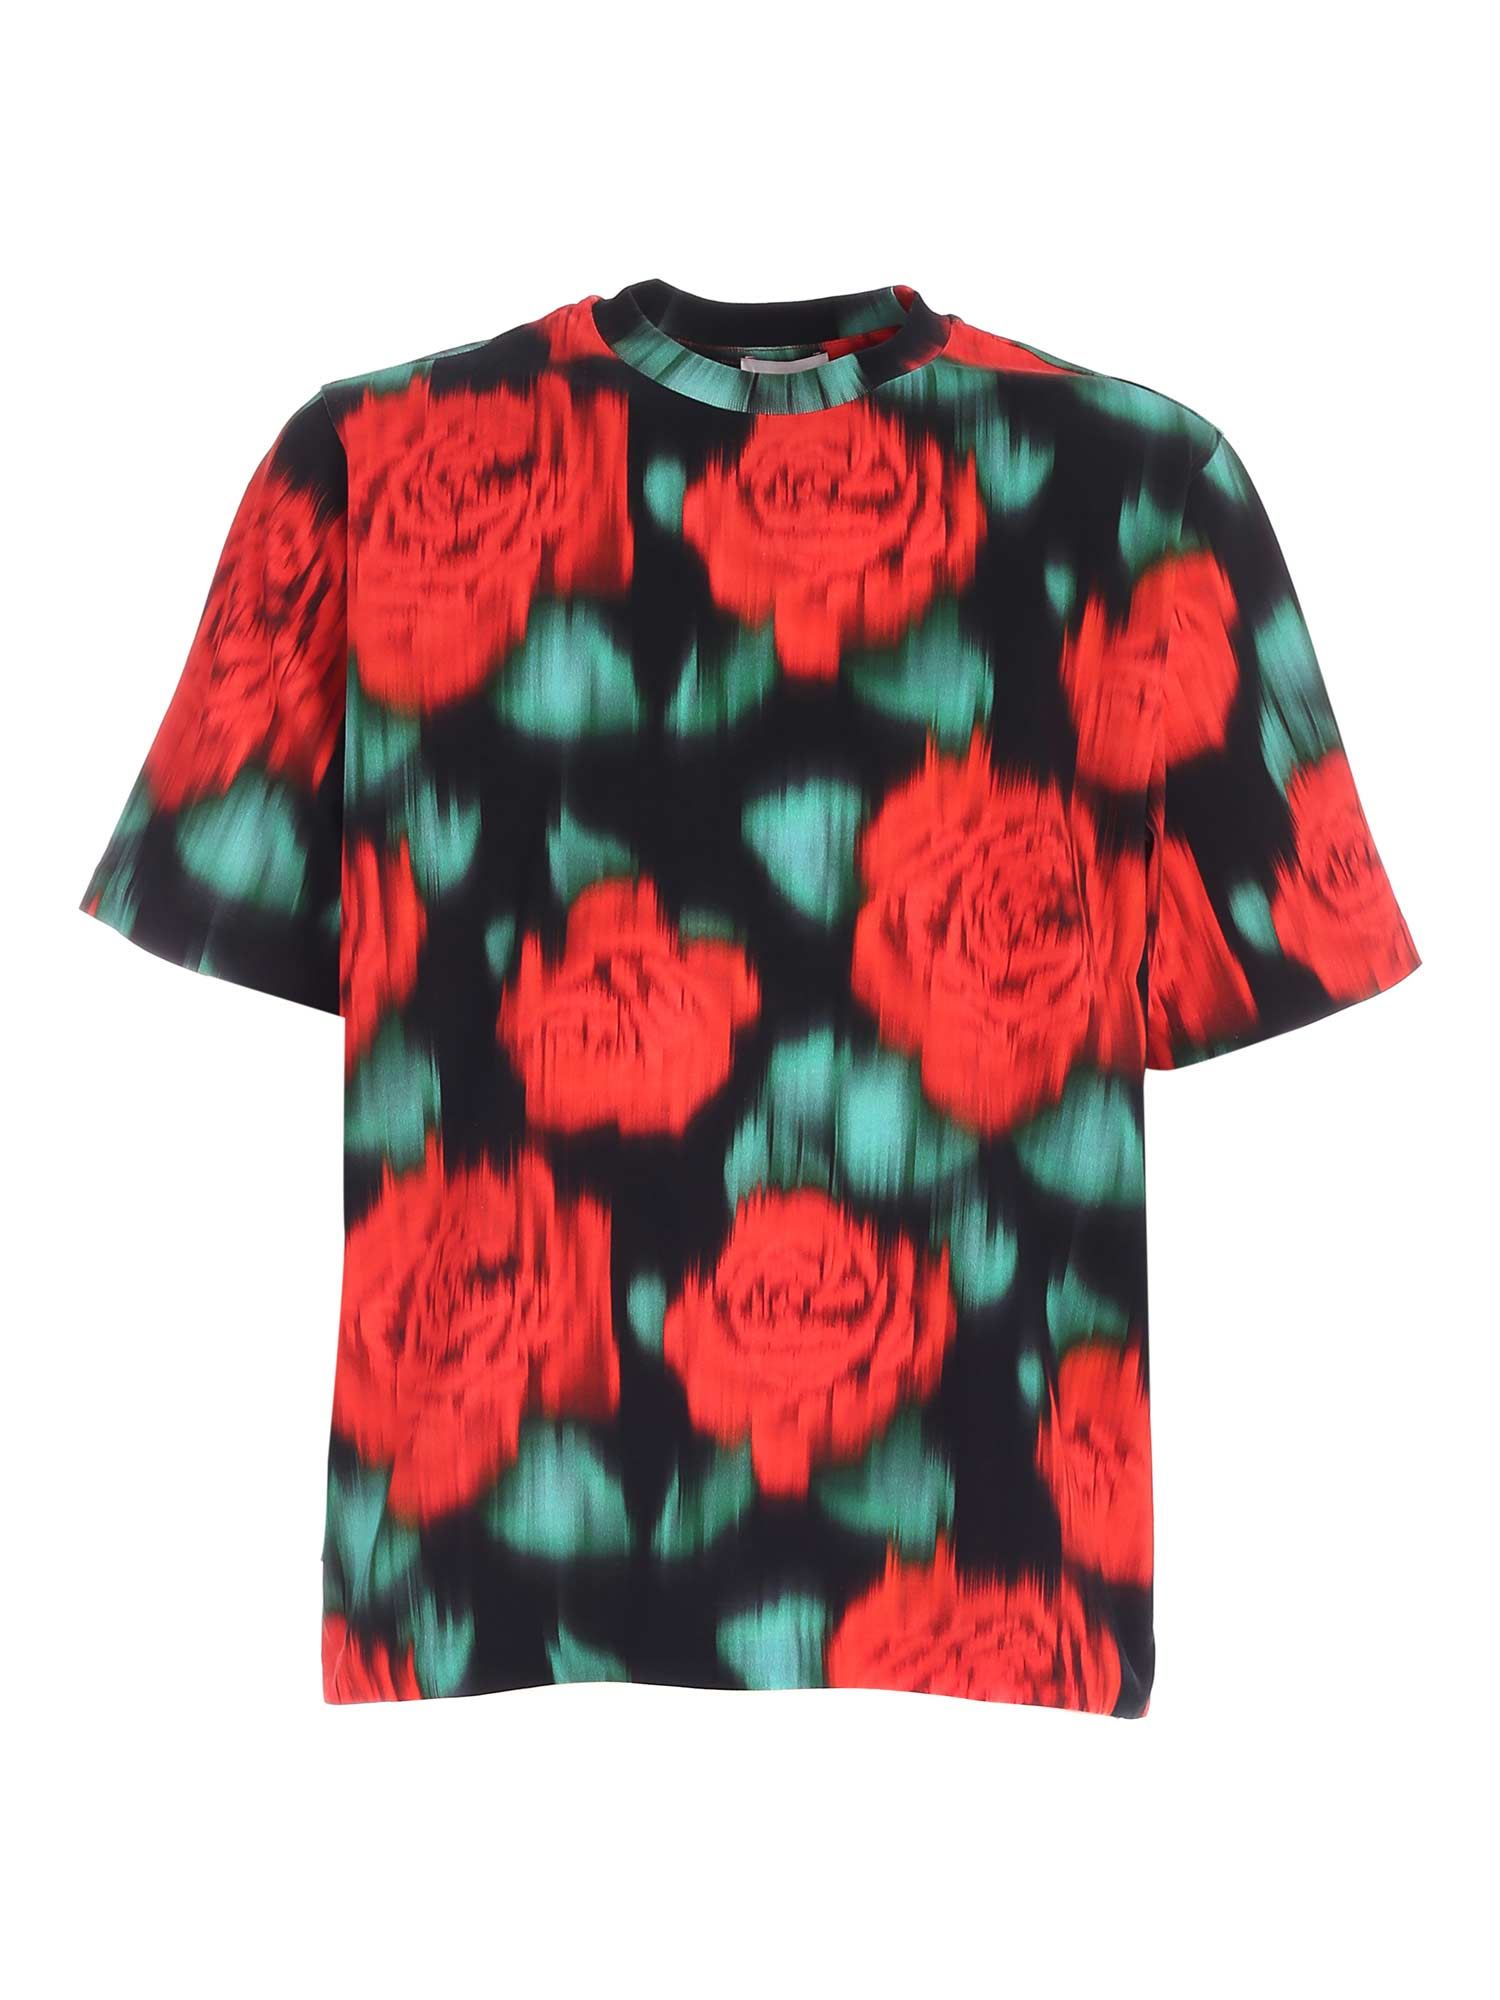 Kenzo PRINT SKATE T-SHIRT IN BLACK AND RED